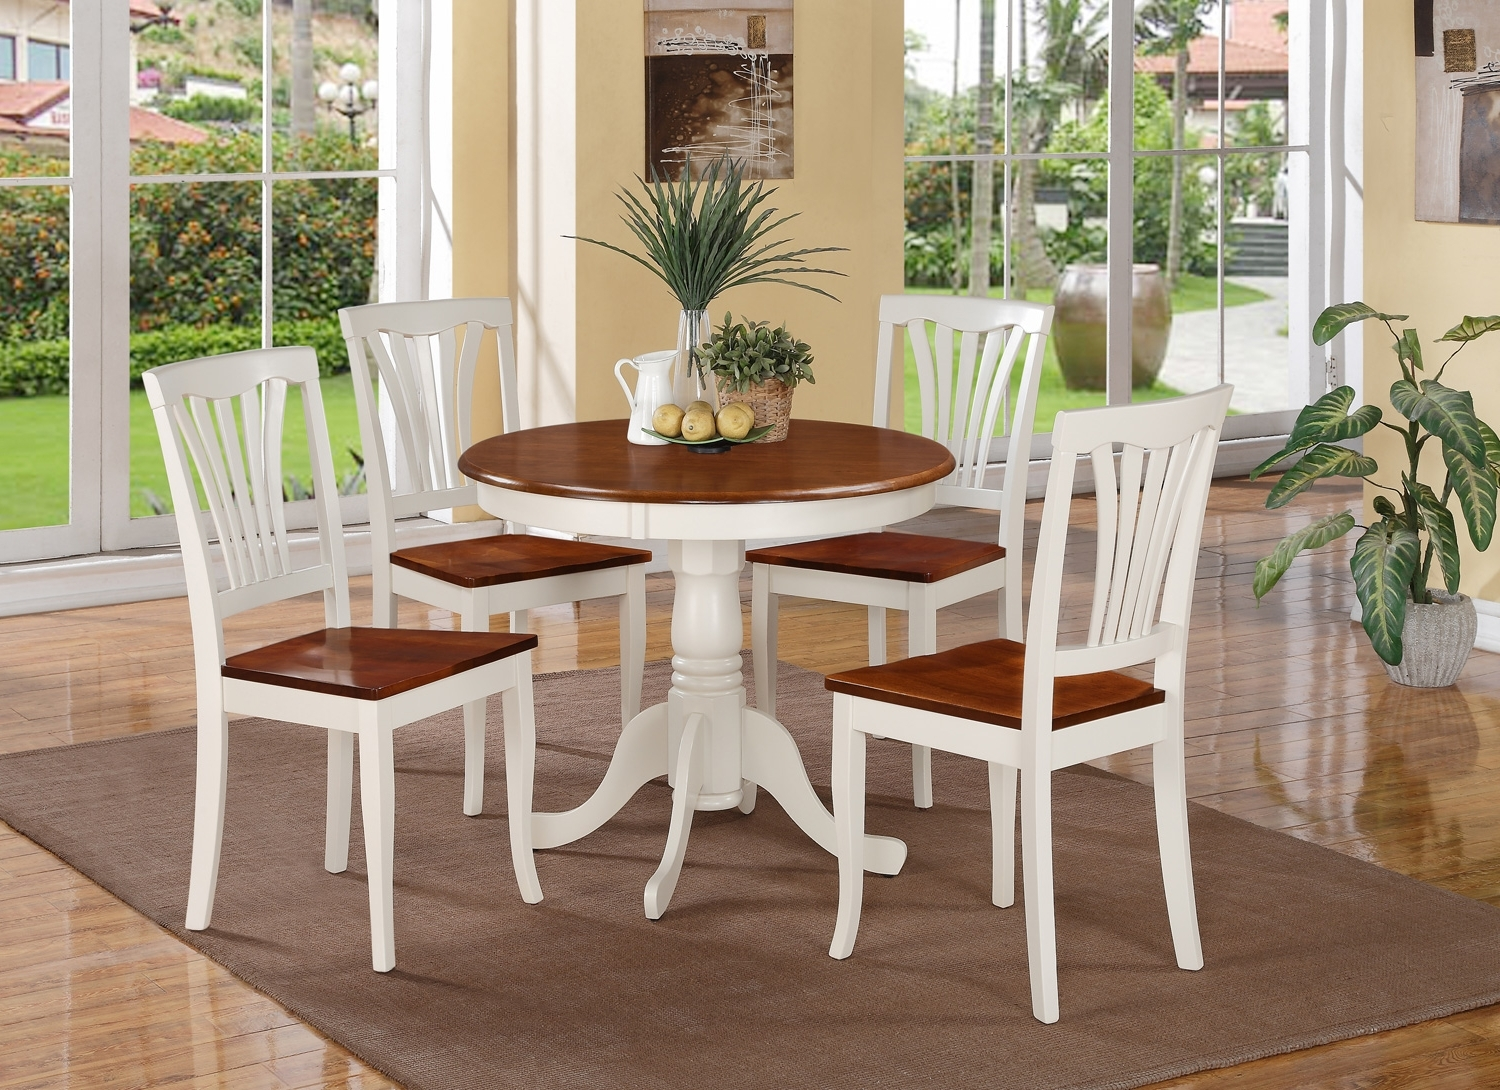 5 Pc Round Small Table Kitchen Table And 4 Wood Chairs Buttermilk Finish Throughout Most Popular Small Dining Sets (View 25 of 25)